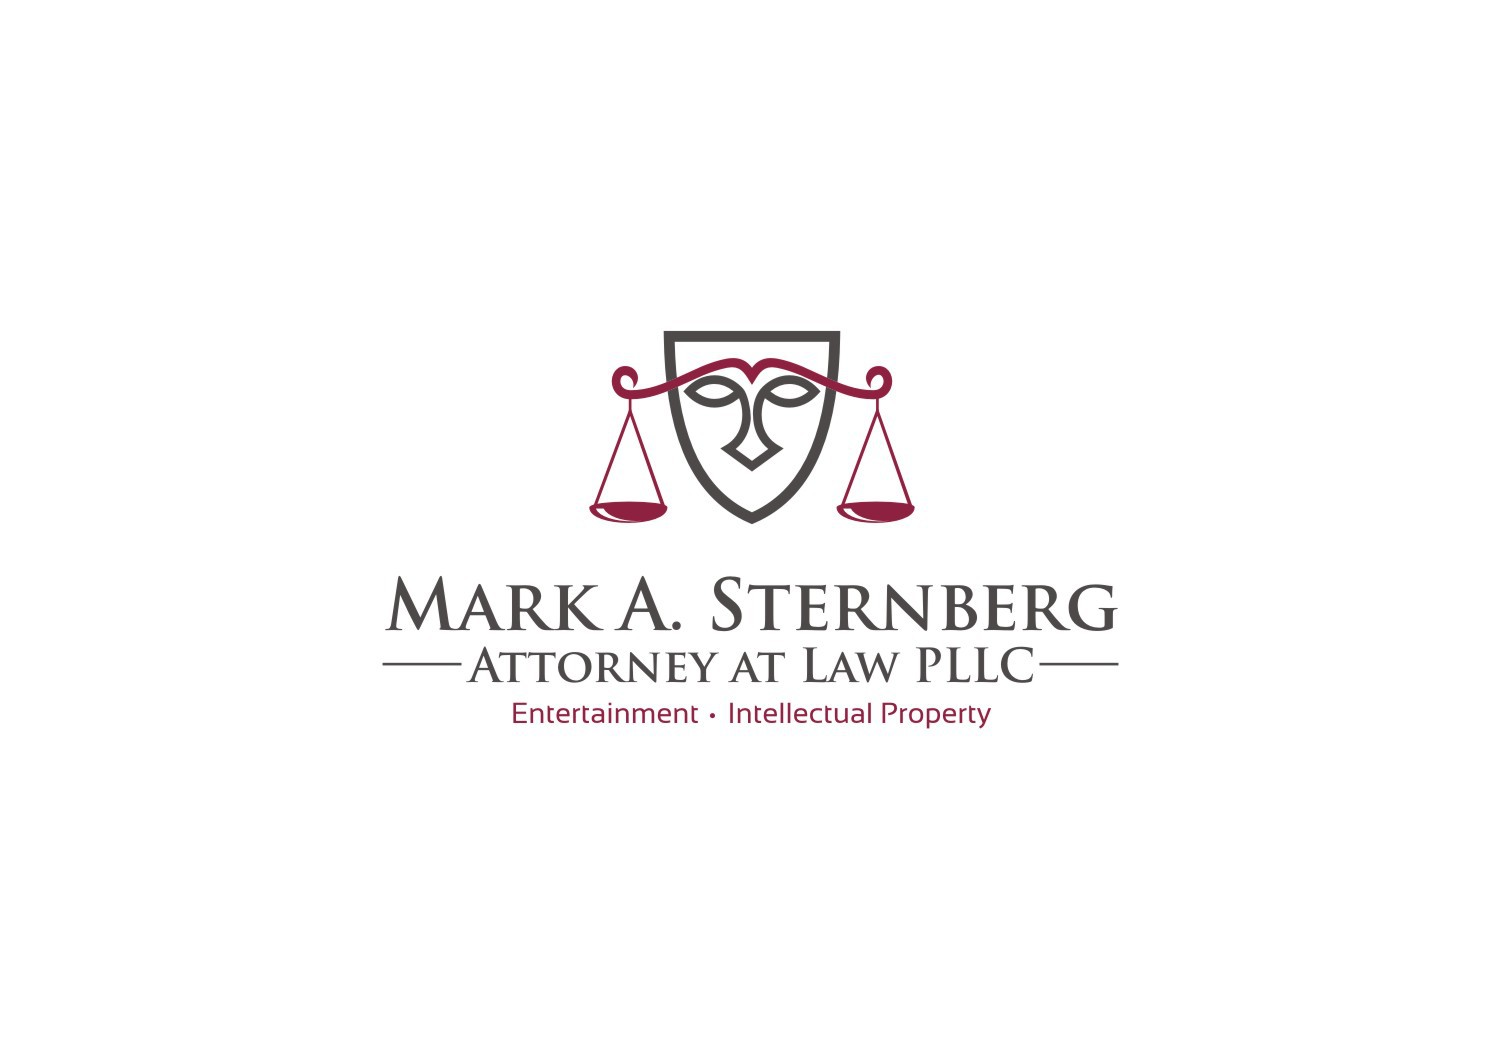 Trendy Logo for Likable Entertainment Lawyer Who Works in the Film, TV, New Media and Book Publishing Industries